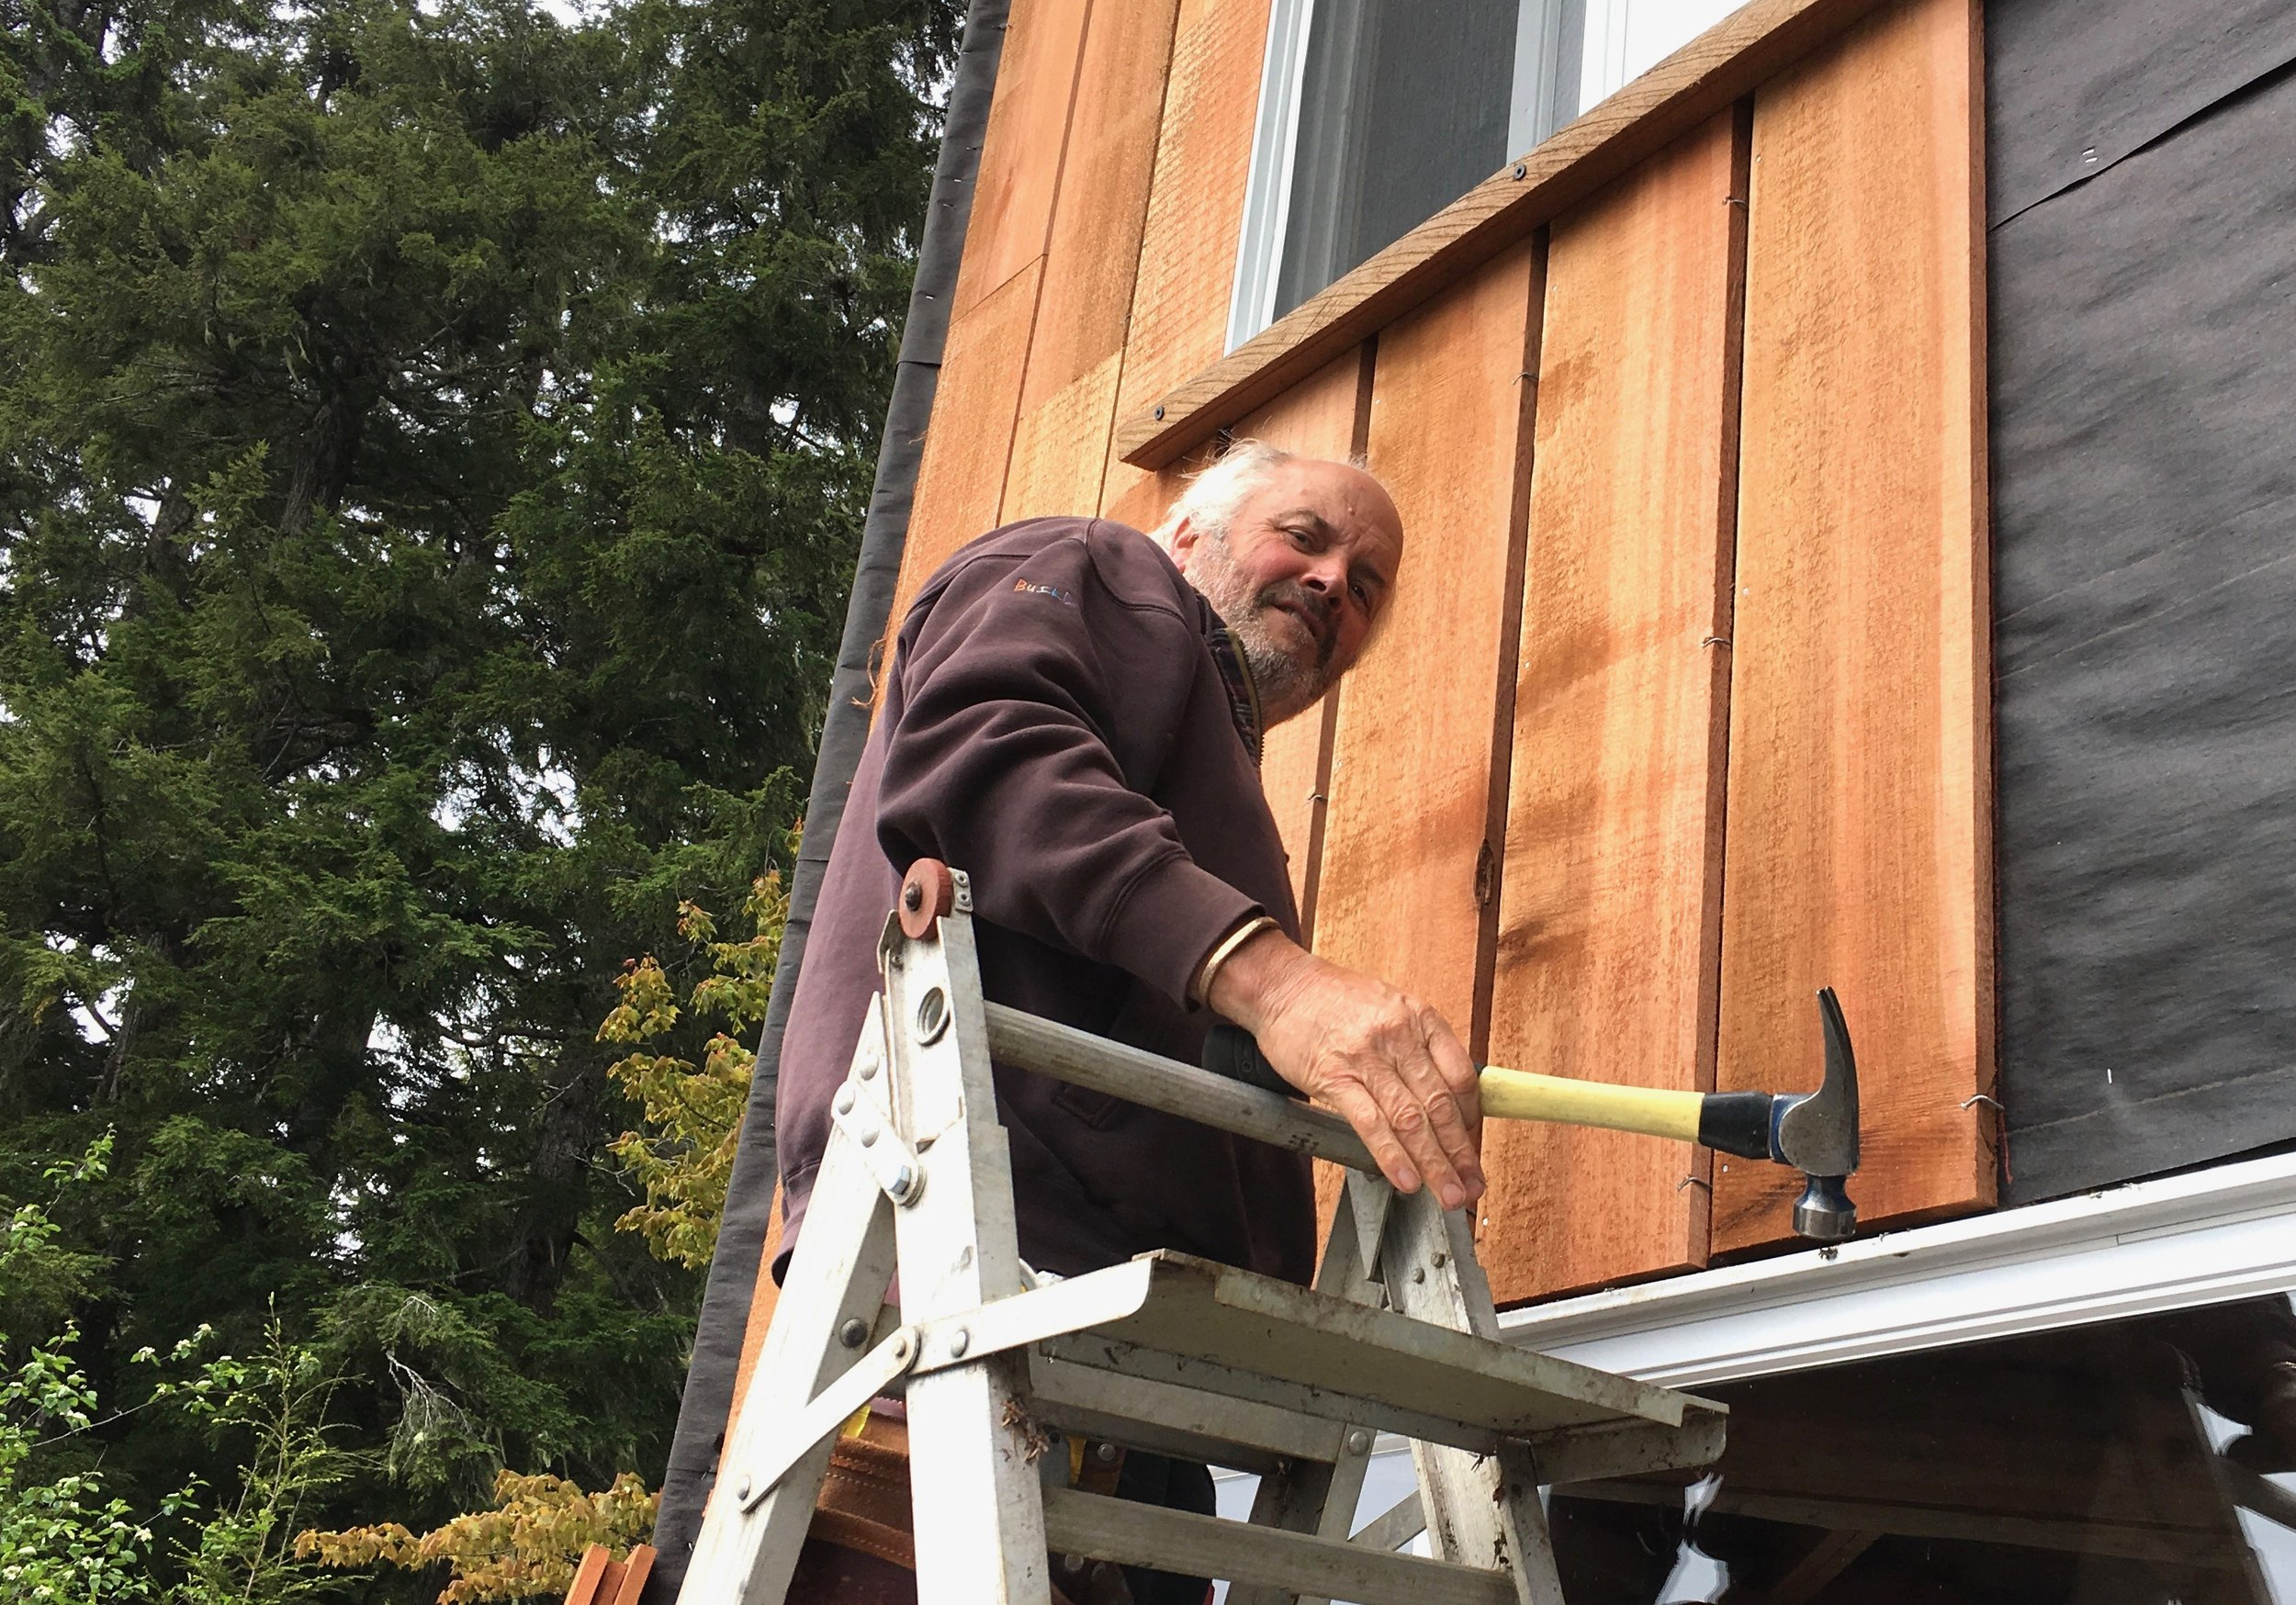 Phil installing new siding.